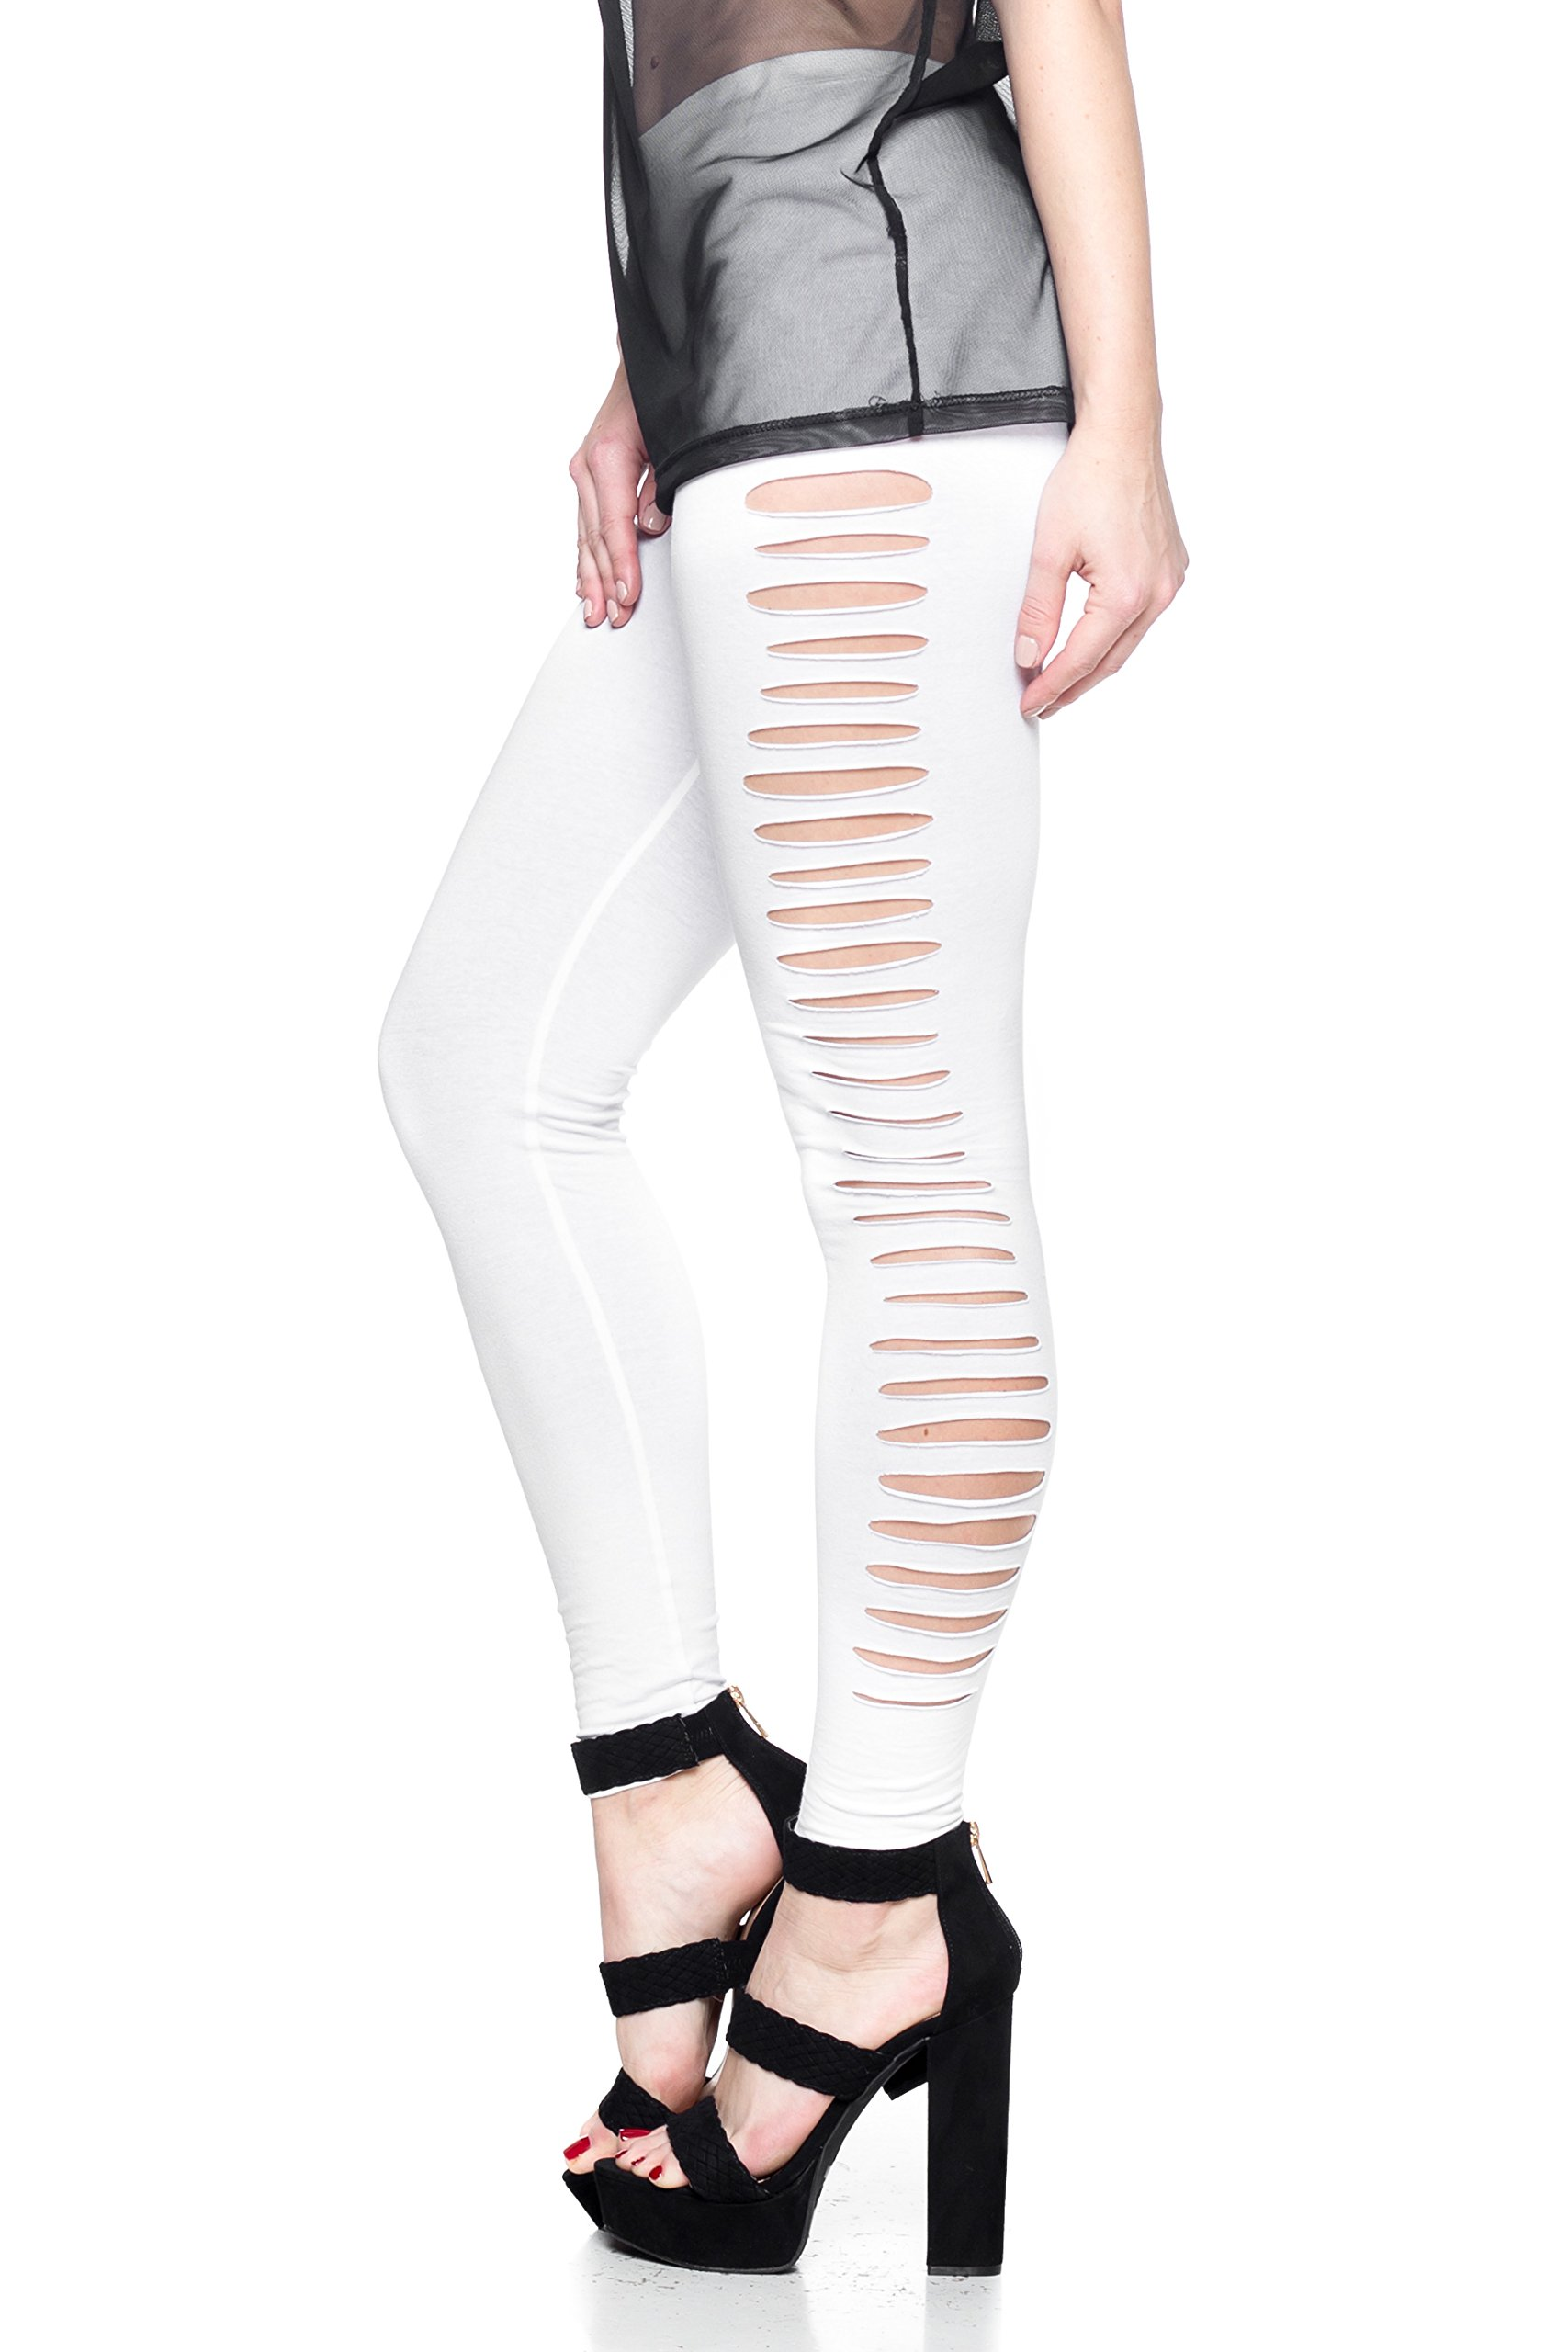 J2 LOVE Made in USA Women's Side Ripped Elastic Pull On Stretch Cotton Legging (up to 5X)